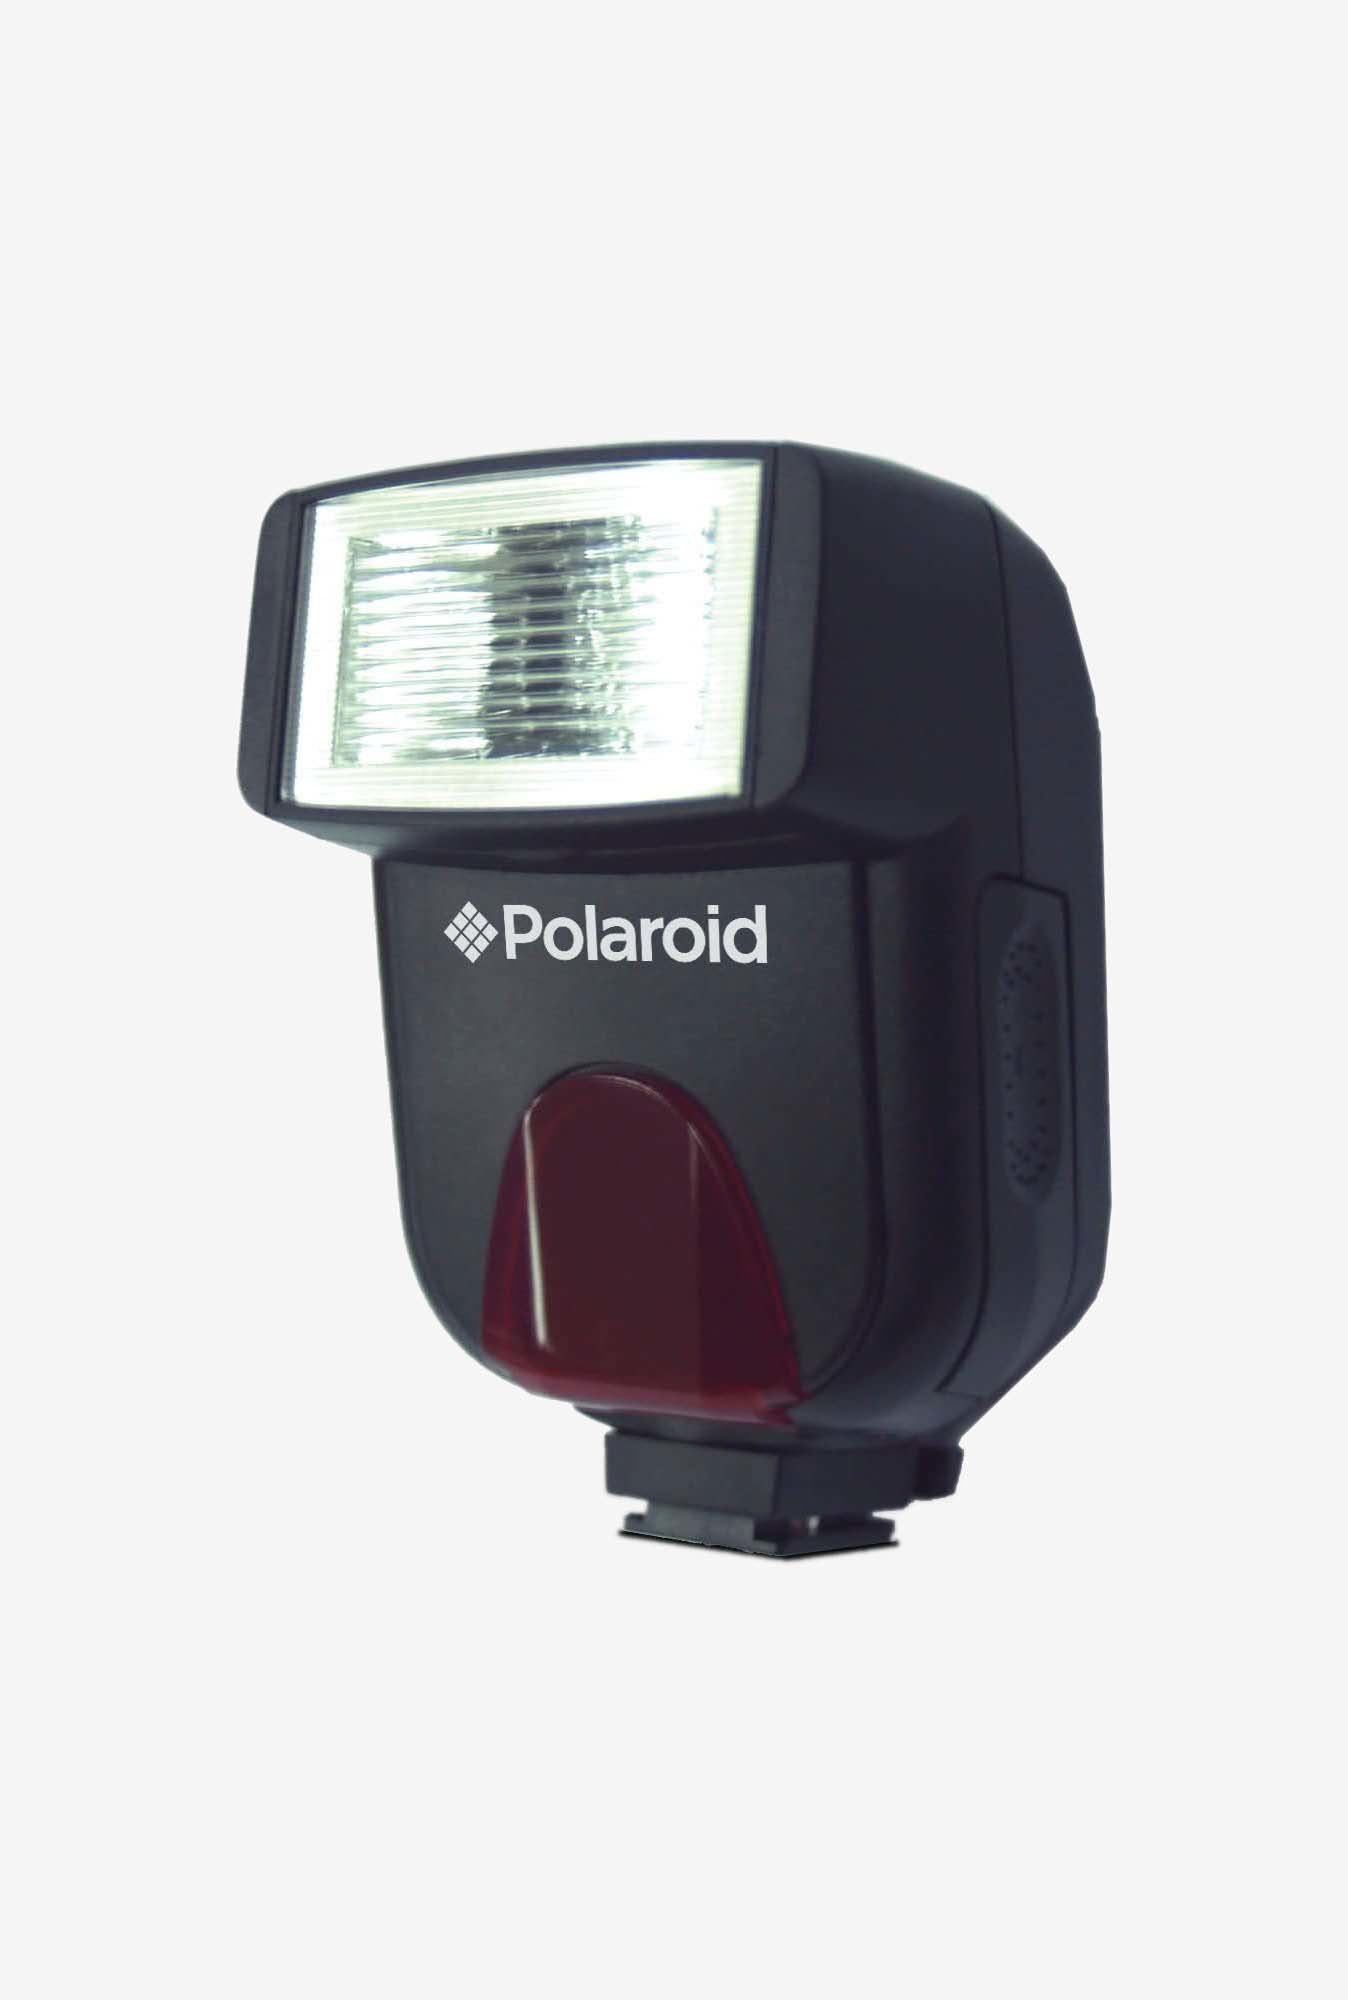 Polaroid PL108AFN Studio Auto Focus (Black)